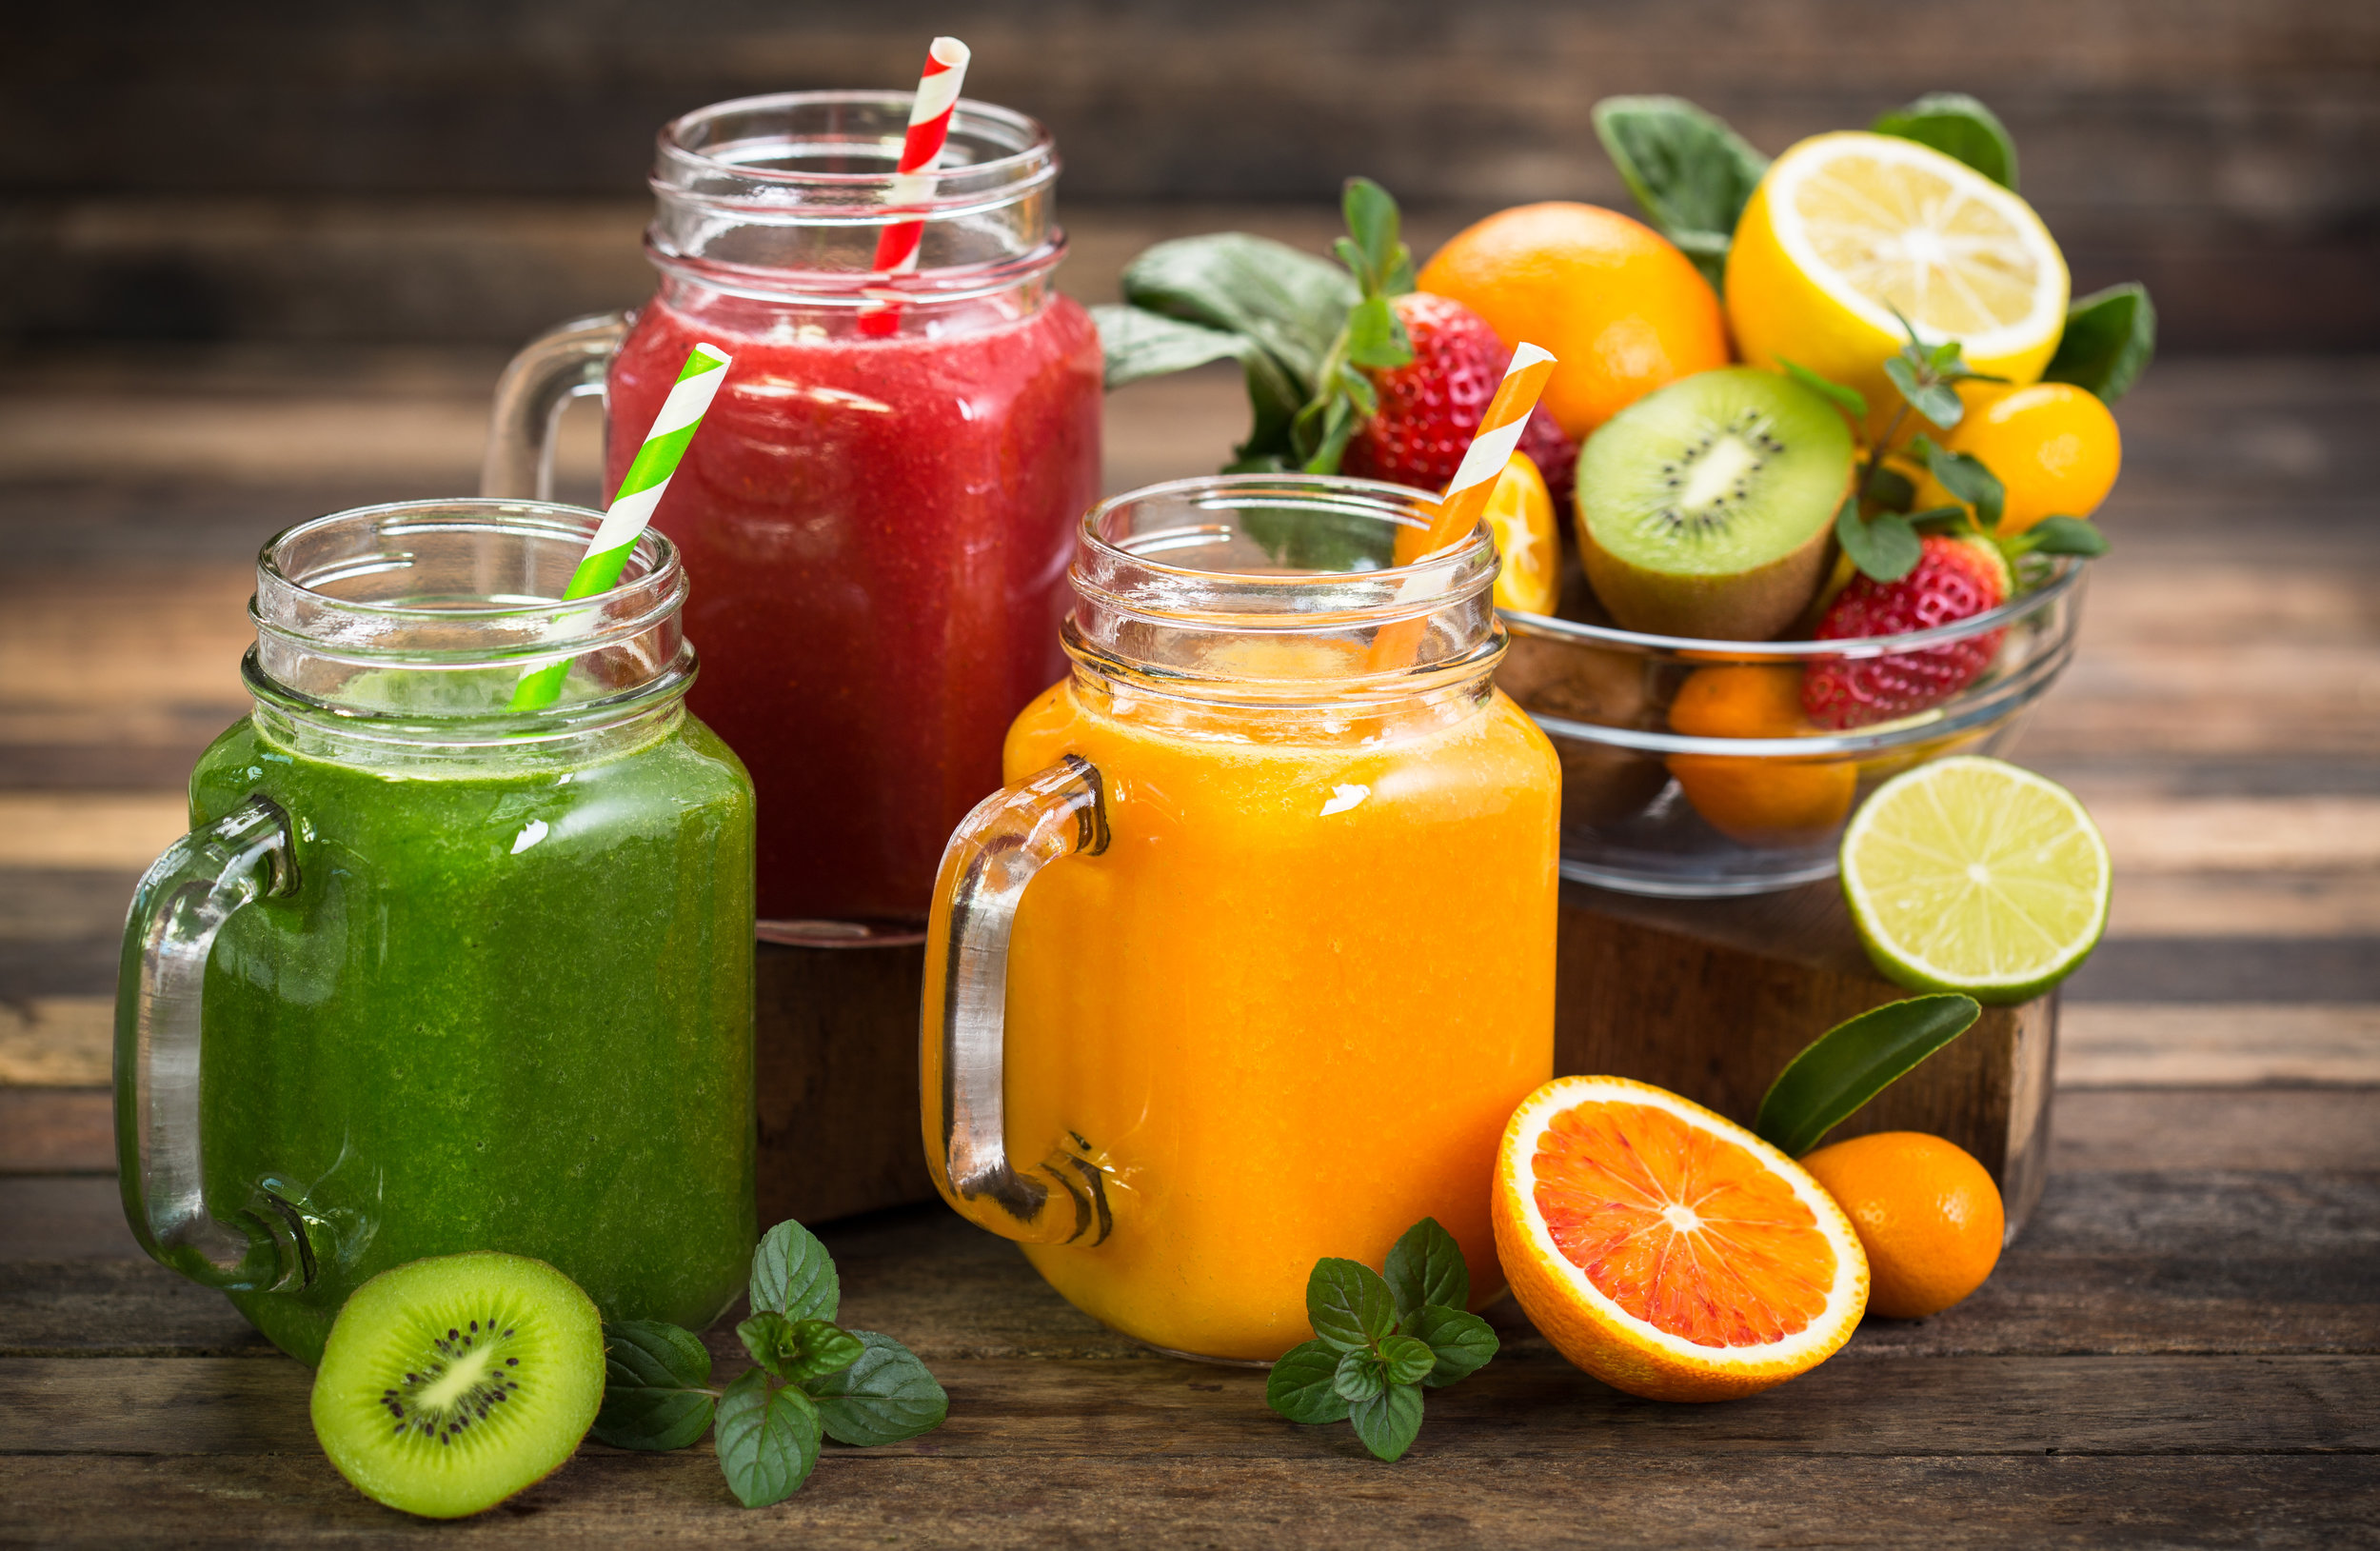 10 Juicing Recipes For Cancer Prevention Great Plains Colon Cancer Task Force